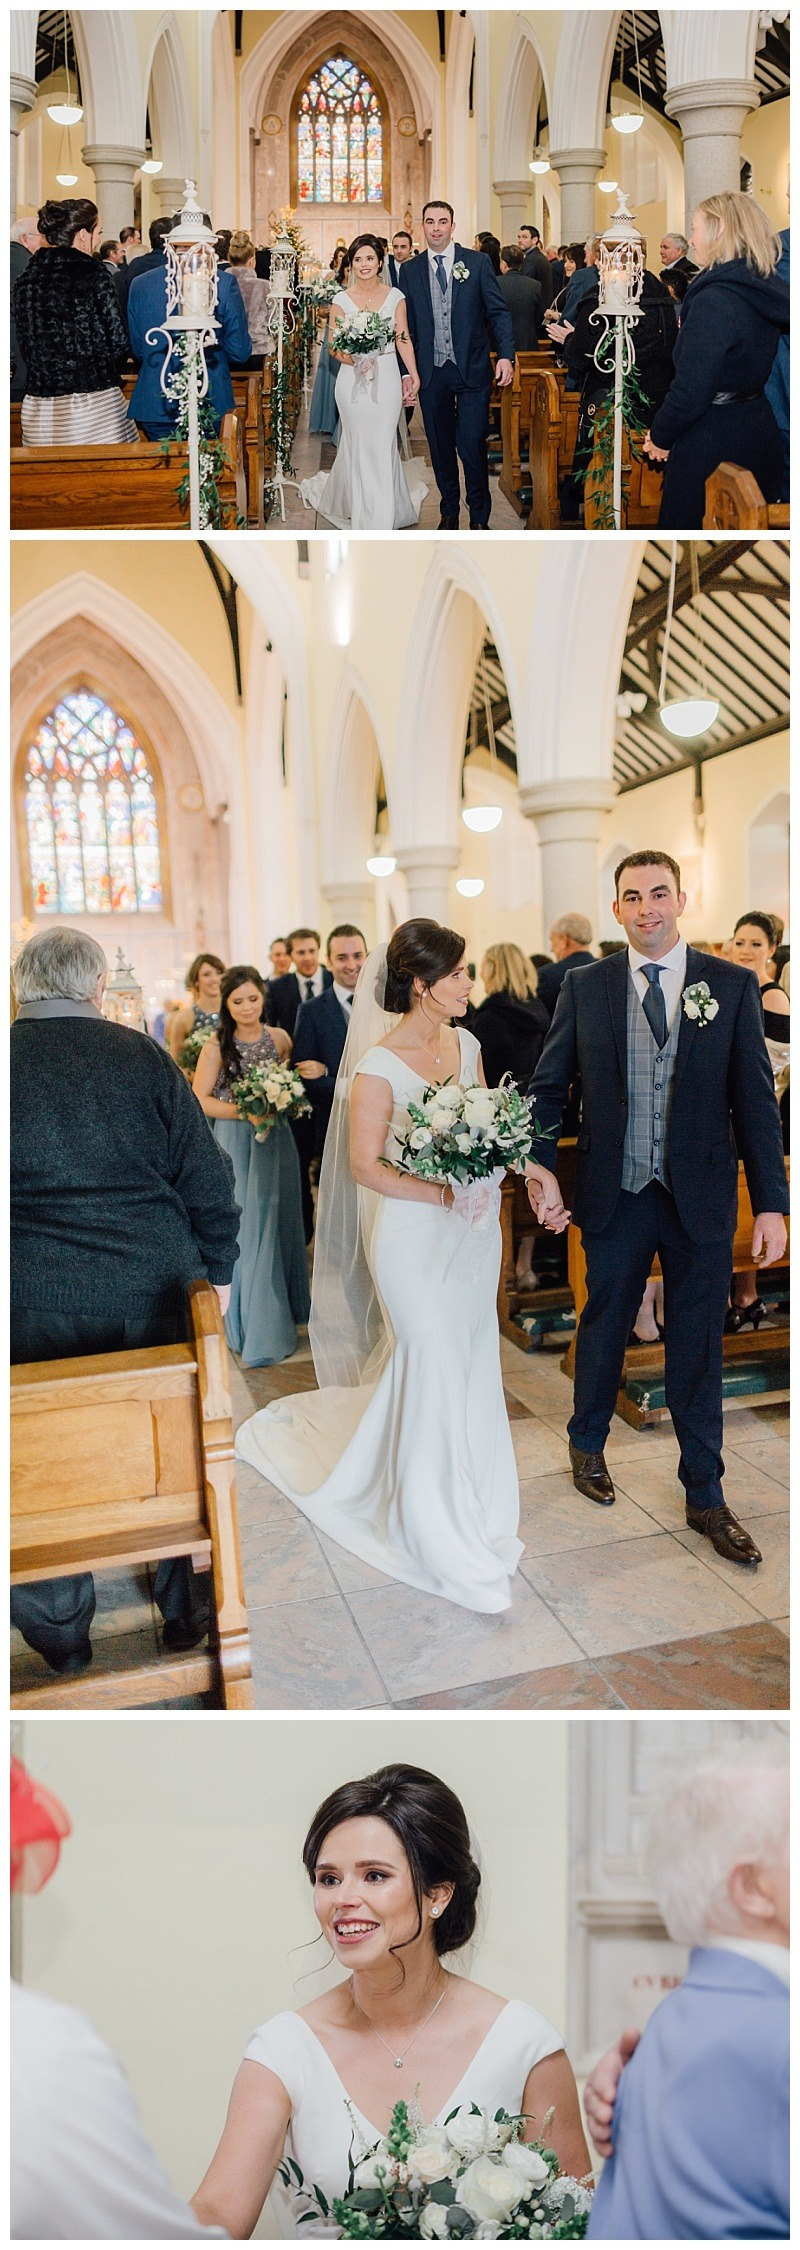 Let the Light in - Eimear and Niall at Glasson House Hotel